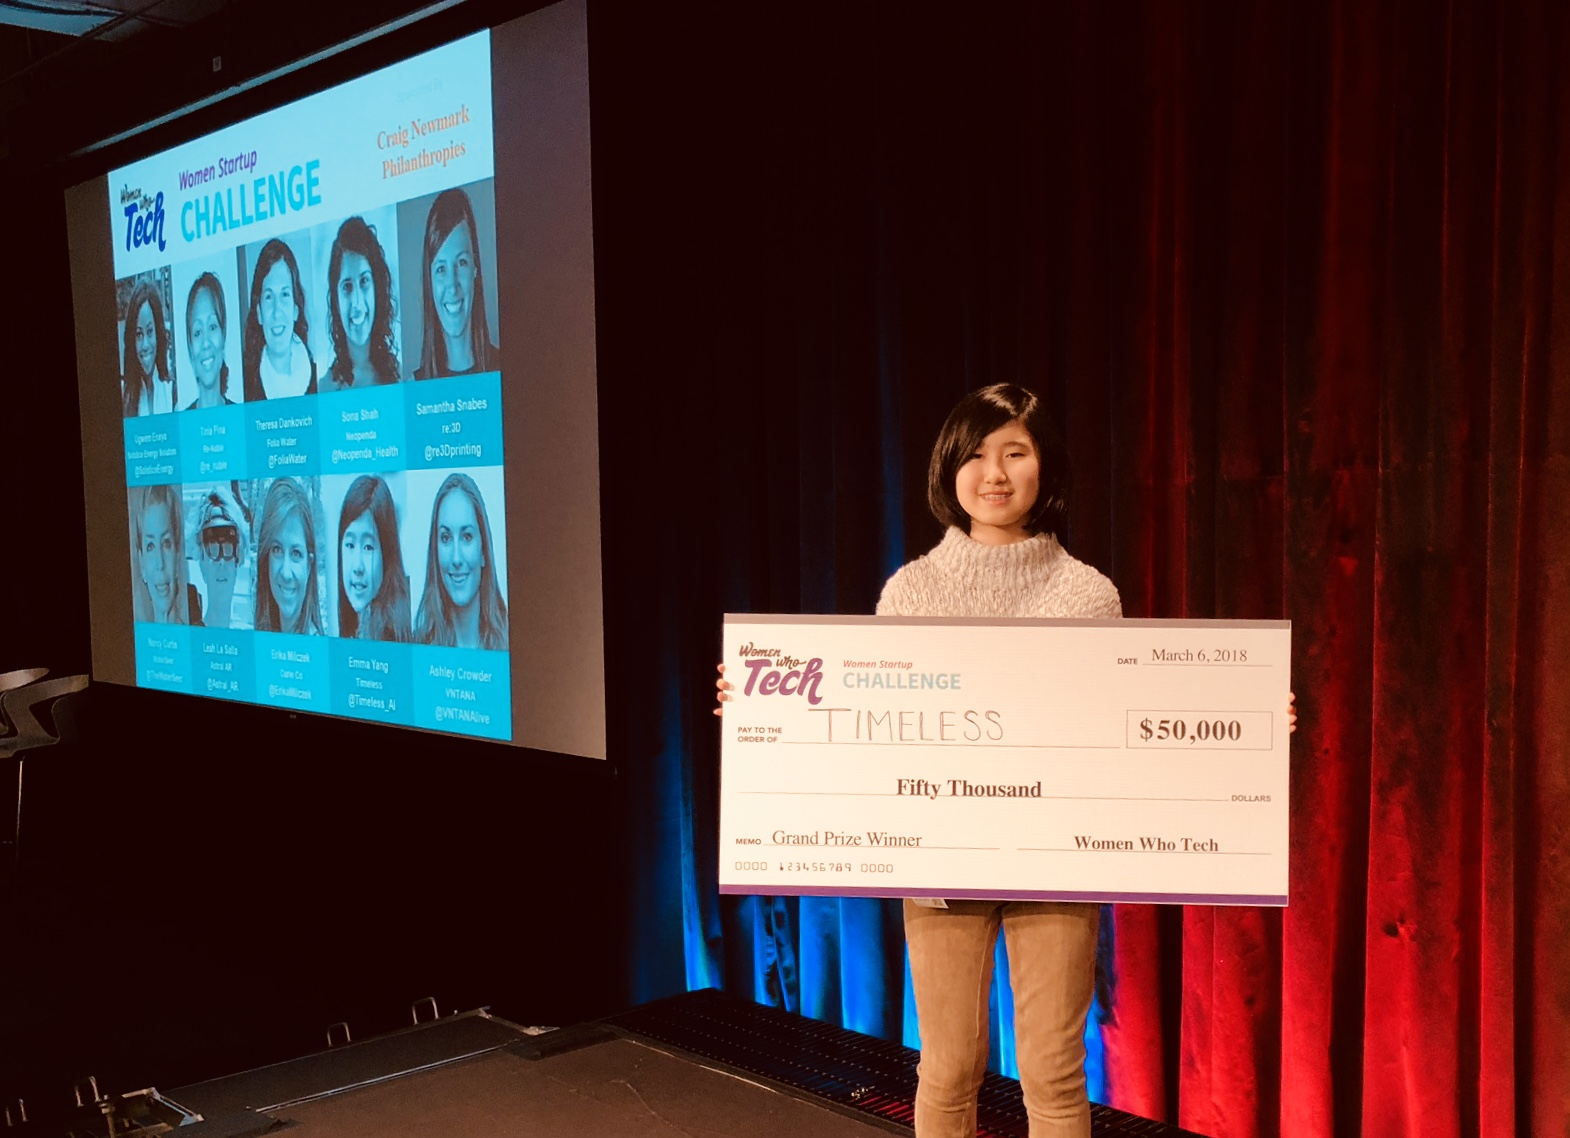 Emma Yang stands on stage holding a check for $50,000 that she won at the Women Who Tech startup challenge in 2018